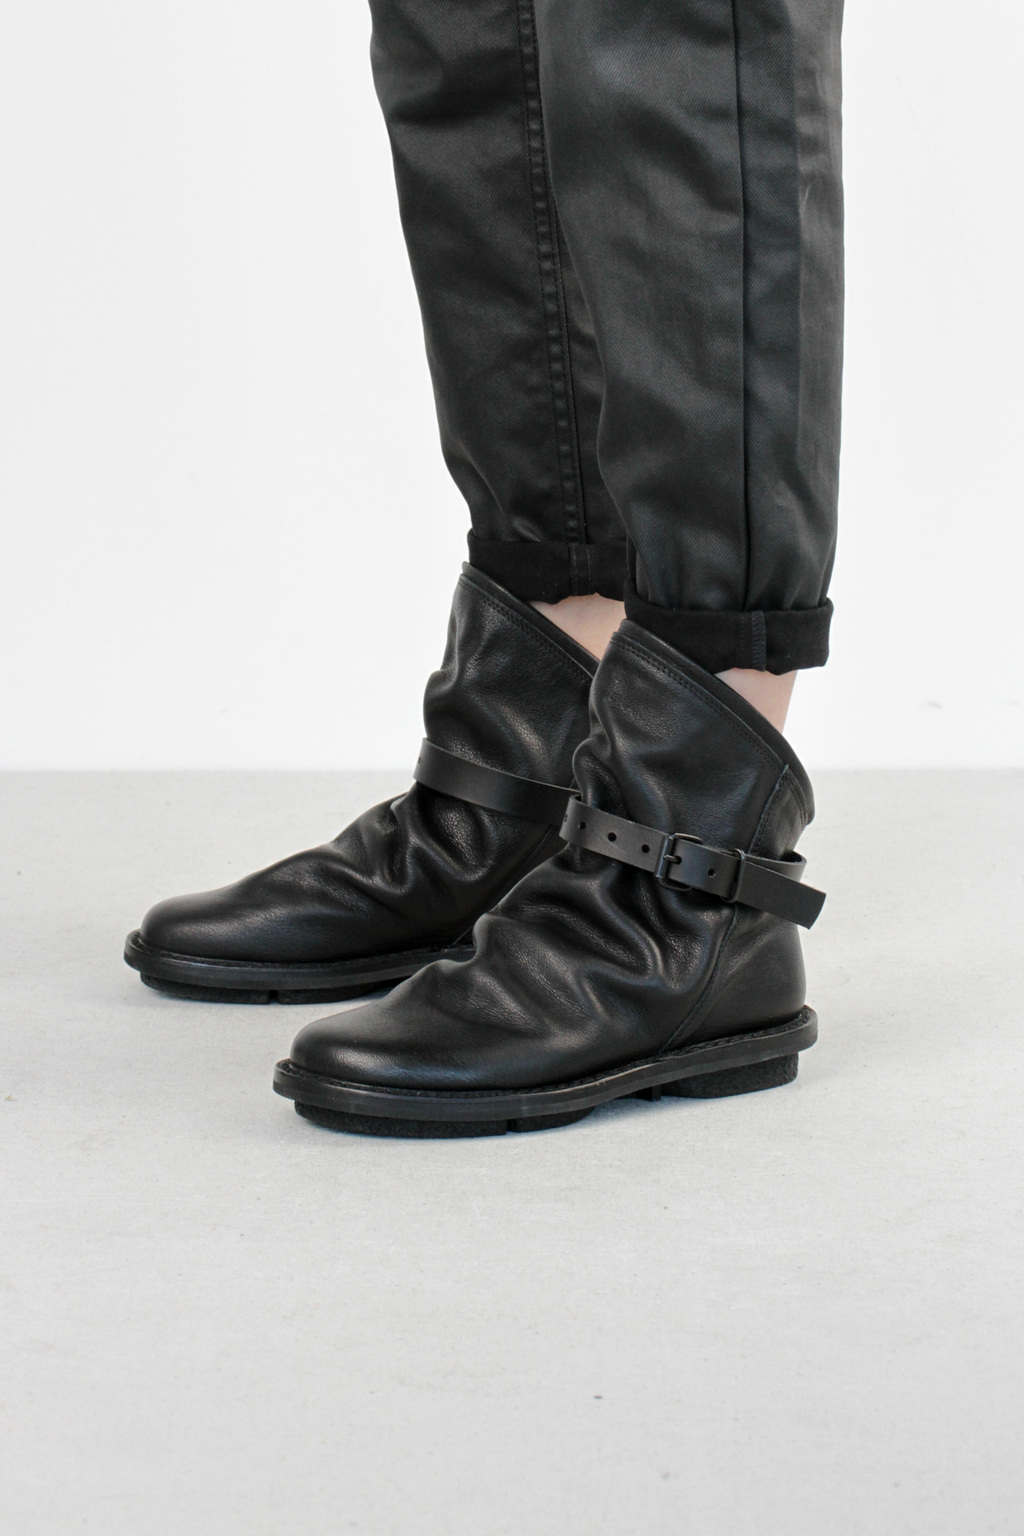 Trippen bomb f black buf leather boots6